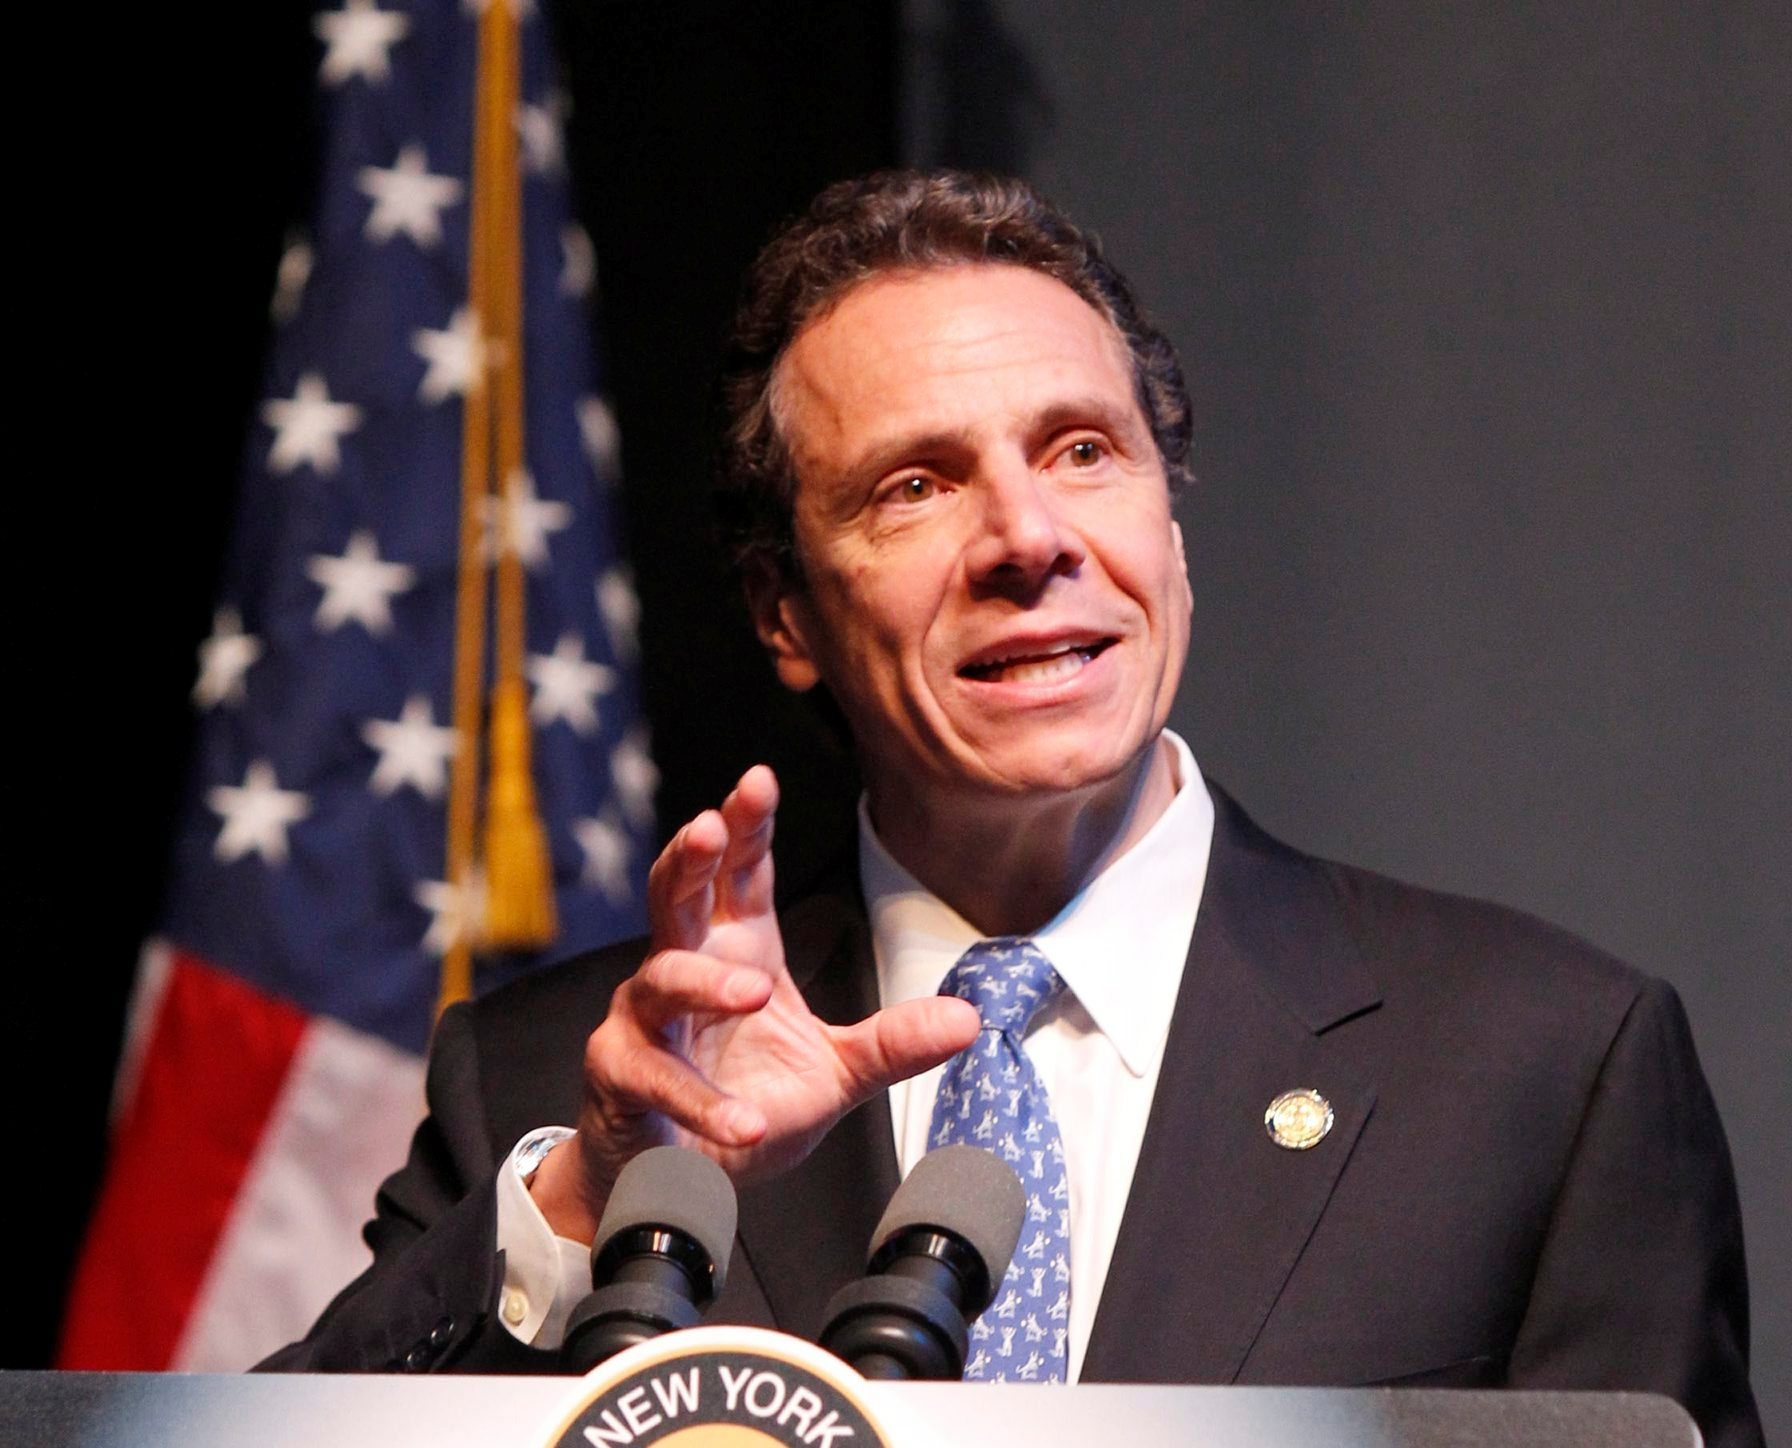 Gov. Andrew M. Cuomo, who for three years opposed the idea of medical marijuana, reached a deal with legislators for limited legalization of the drug.